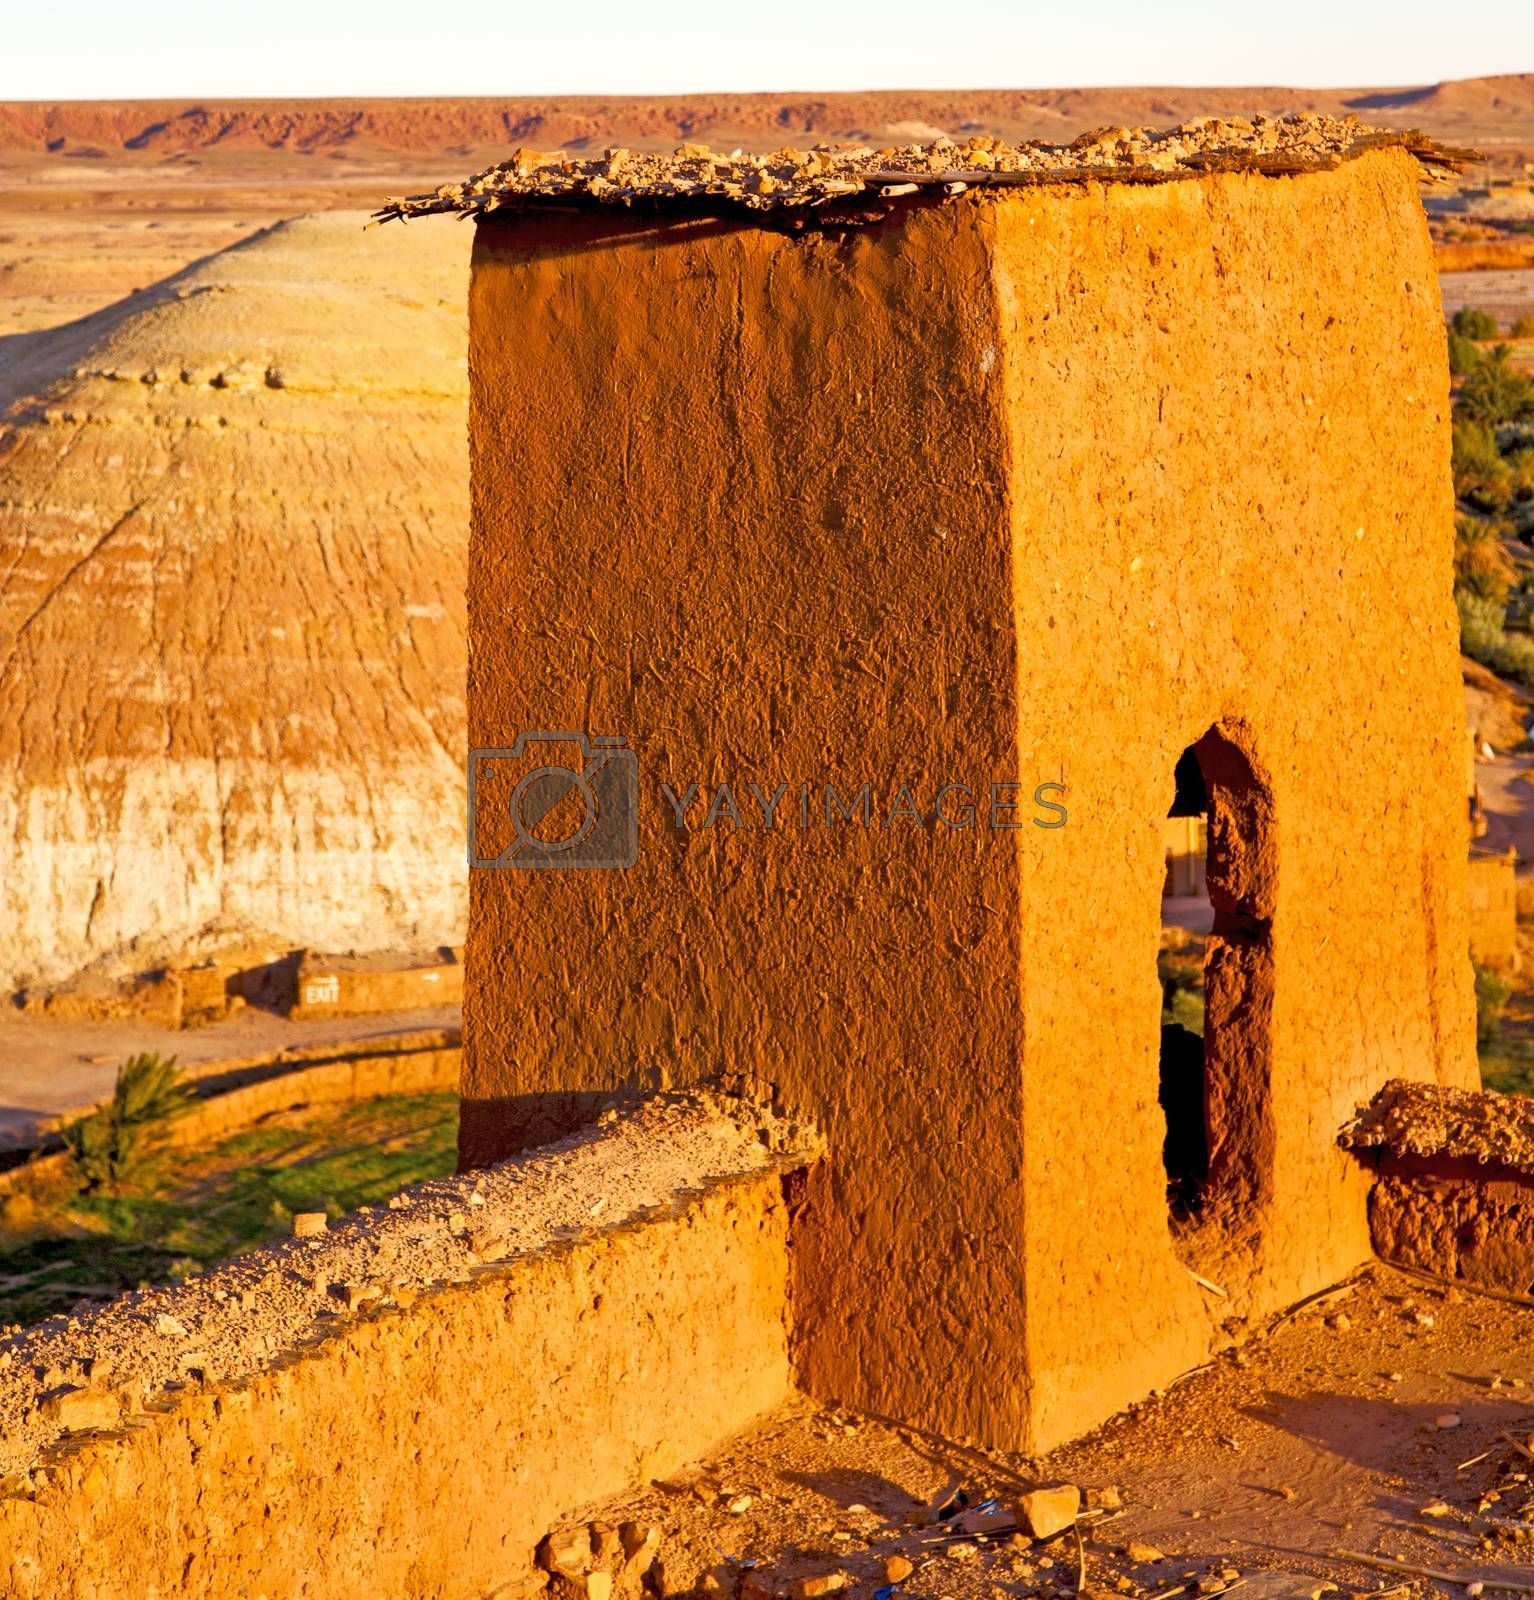 season  africa in morocco the old contruction and the historical by lkpro